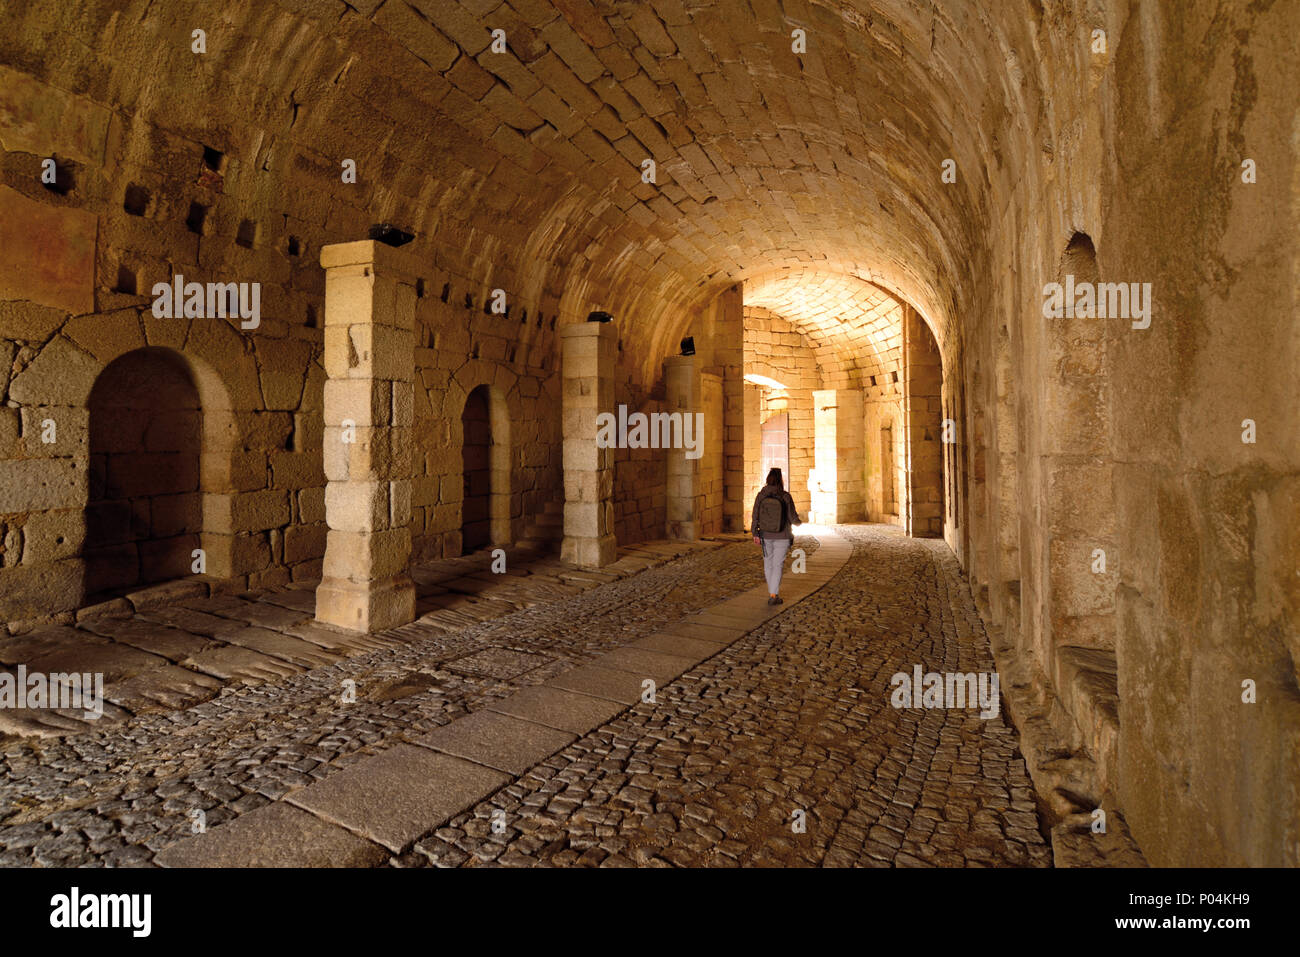 Woman walking in a fortified tunnel towards exit - Stock Image